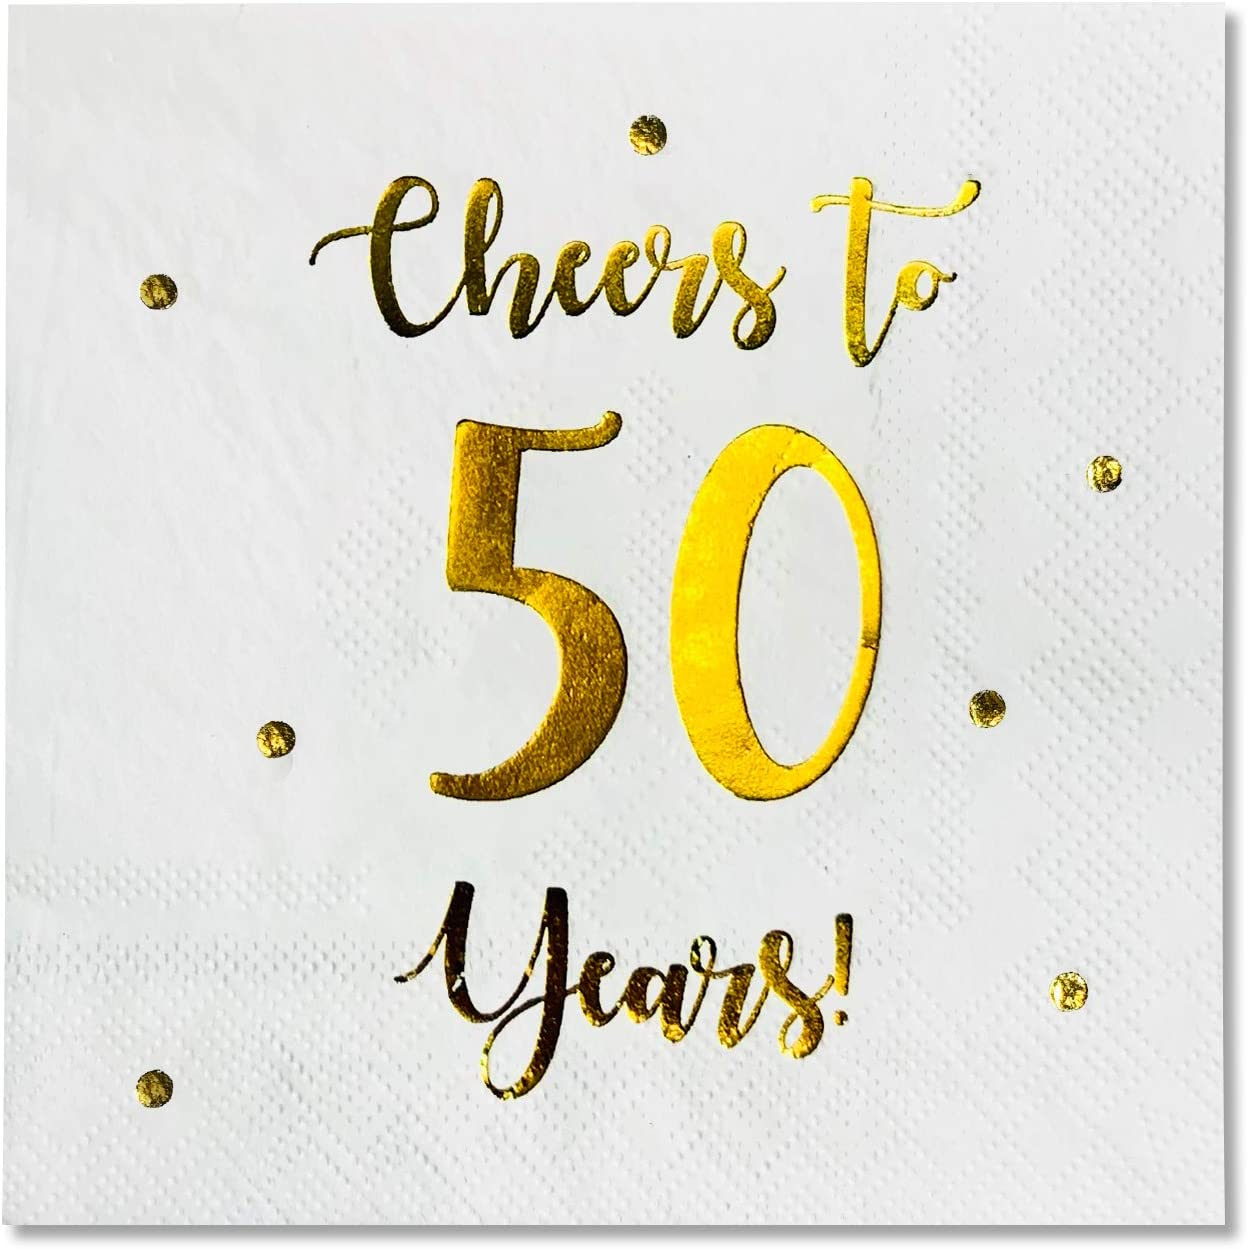 Cheers To 50 Years Cocktail Napkins Happy 50th Birthday Decorations For Men And Women And Wedding Anniversary Party Decorations 50 Pack 3 Ply Napkins 5 X 5 Inch Folded White Cocktail Napkins